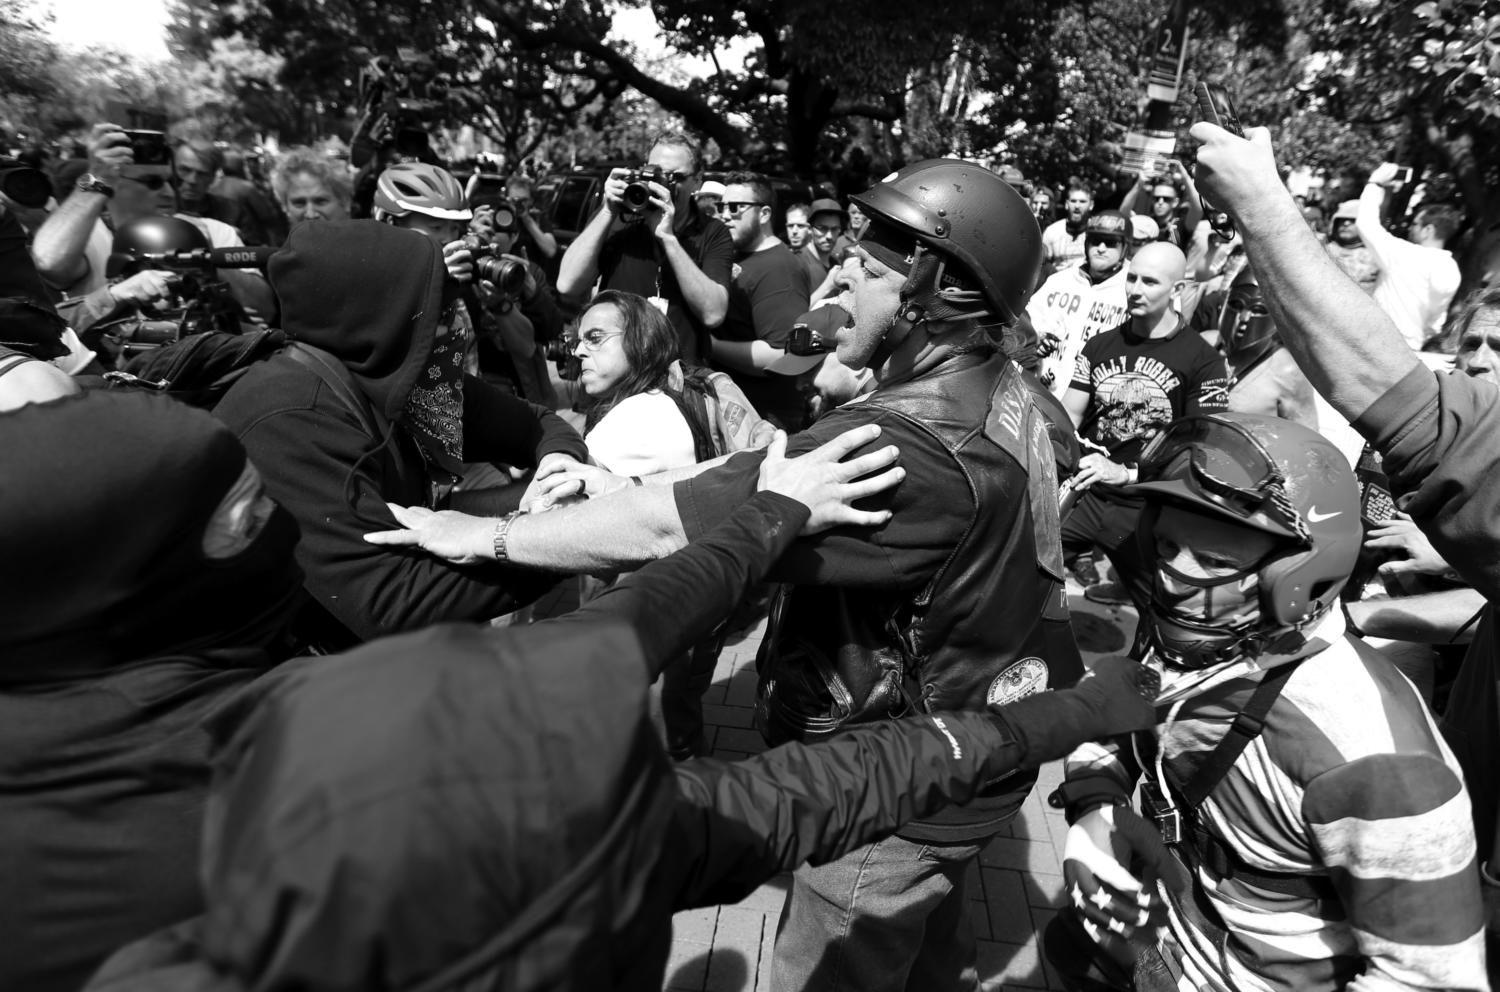 Anti-+and+pro-Trump+supporters+clash+during+competing+demonstrations+at+Martin+Luther+King+Jr.+Civic+Center+Park+in+Berkeley%2C+Calif.%2C+on+Saturday%2C+April+15%2C+2017.+%28Anda+Chu%2FBay+Area+News+Group%2FTNS%29